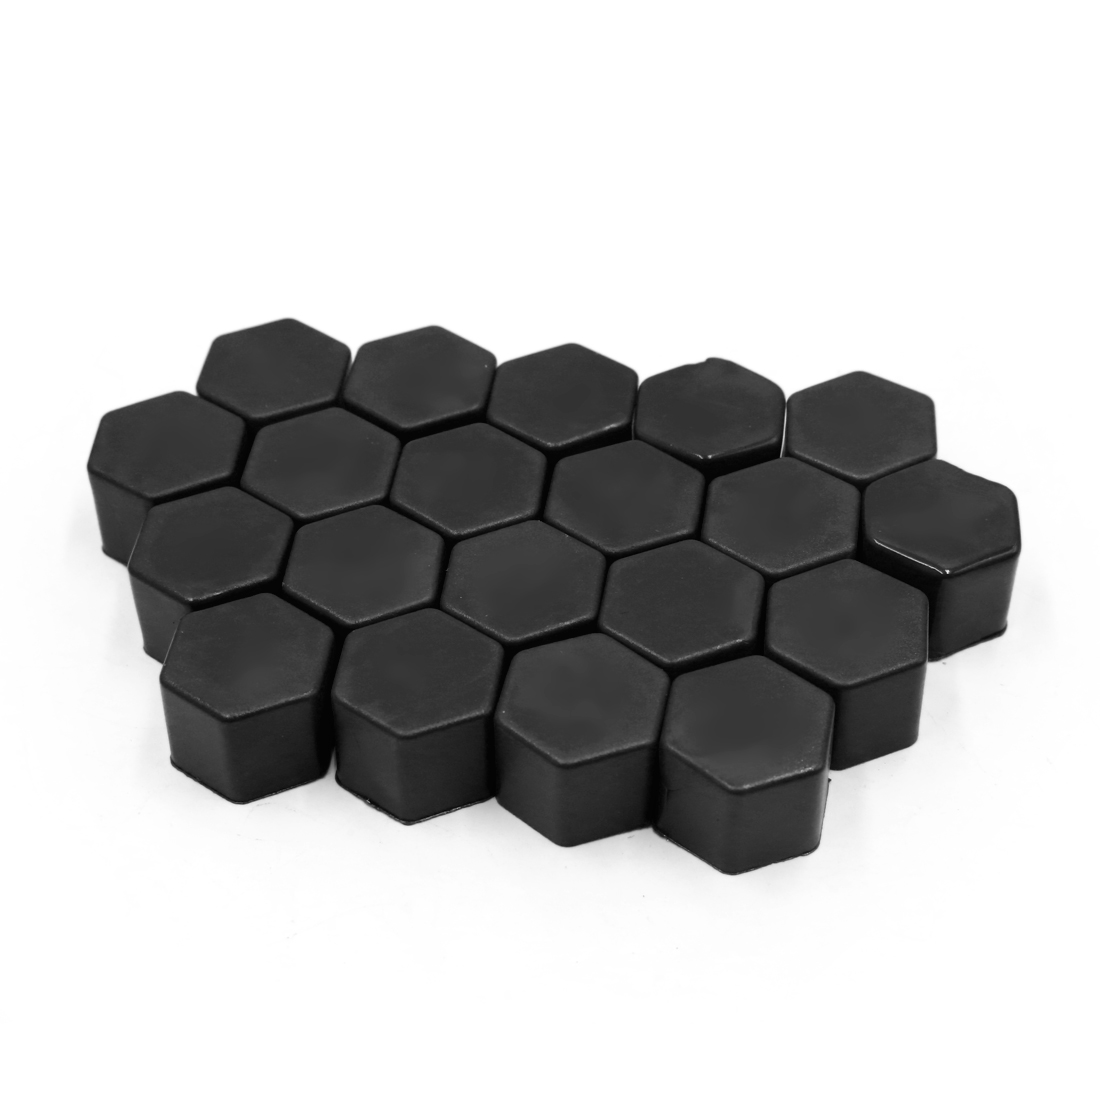 20Pcs Black Silicone 19mm Car Wheel Nut Lug Hub Covers Screw Dust Protect Caps - image 4 of 4